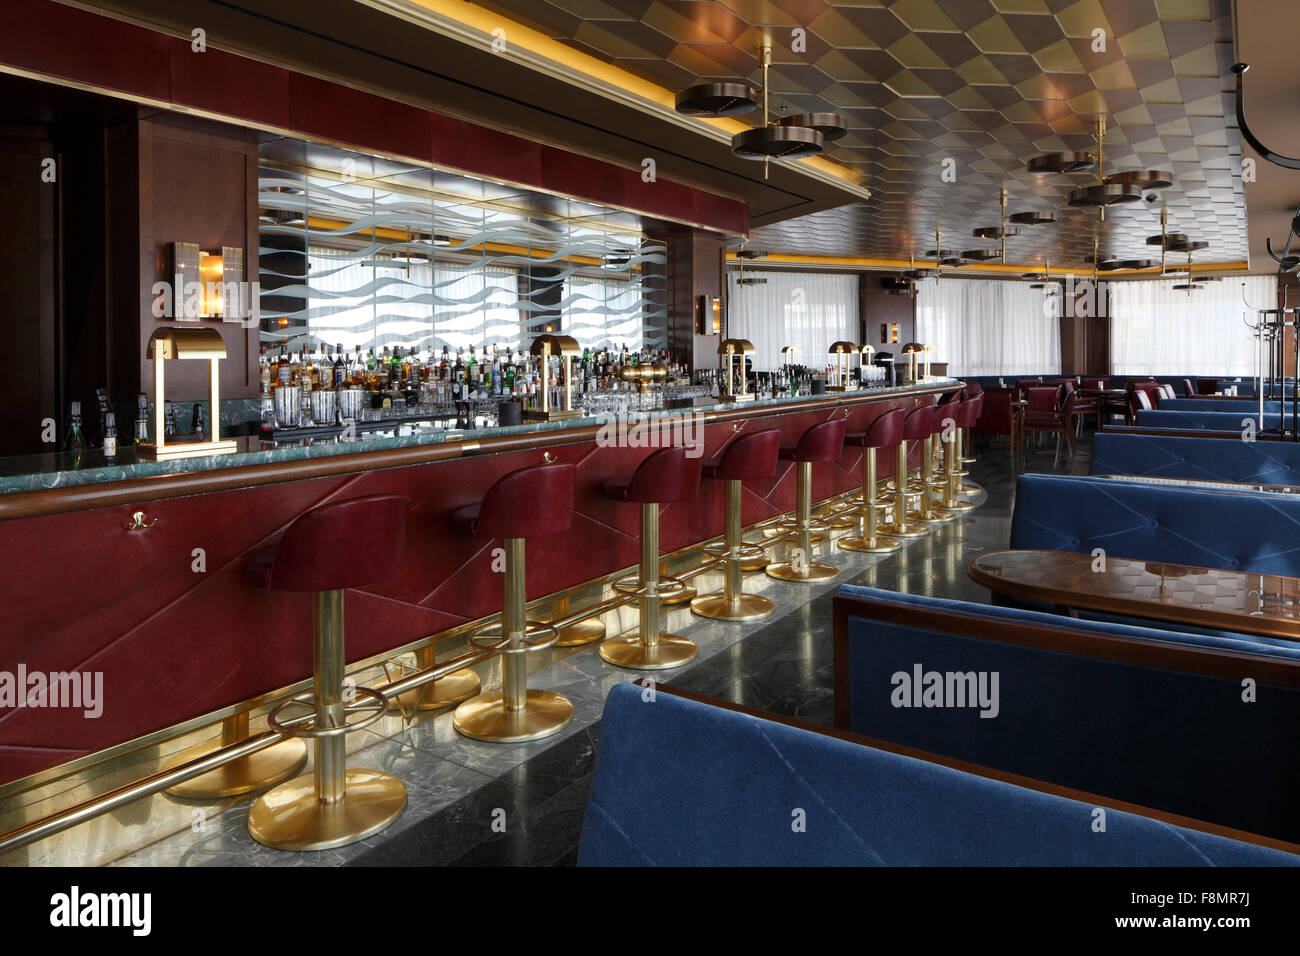 Red leather and brass barstools lined up perfectly along the bar